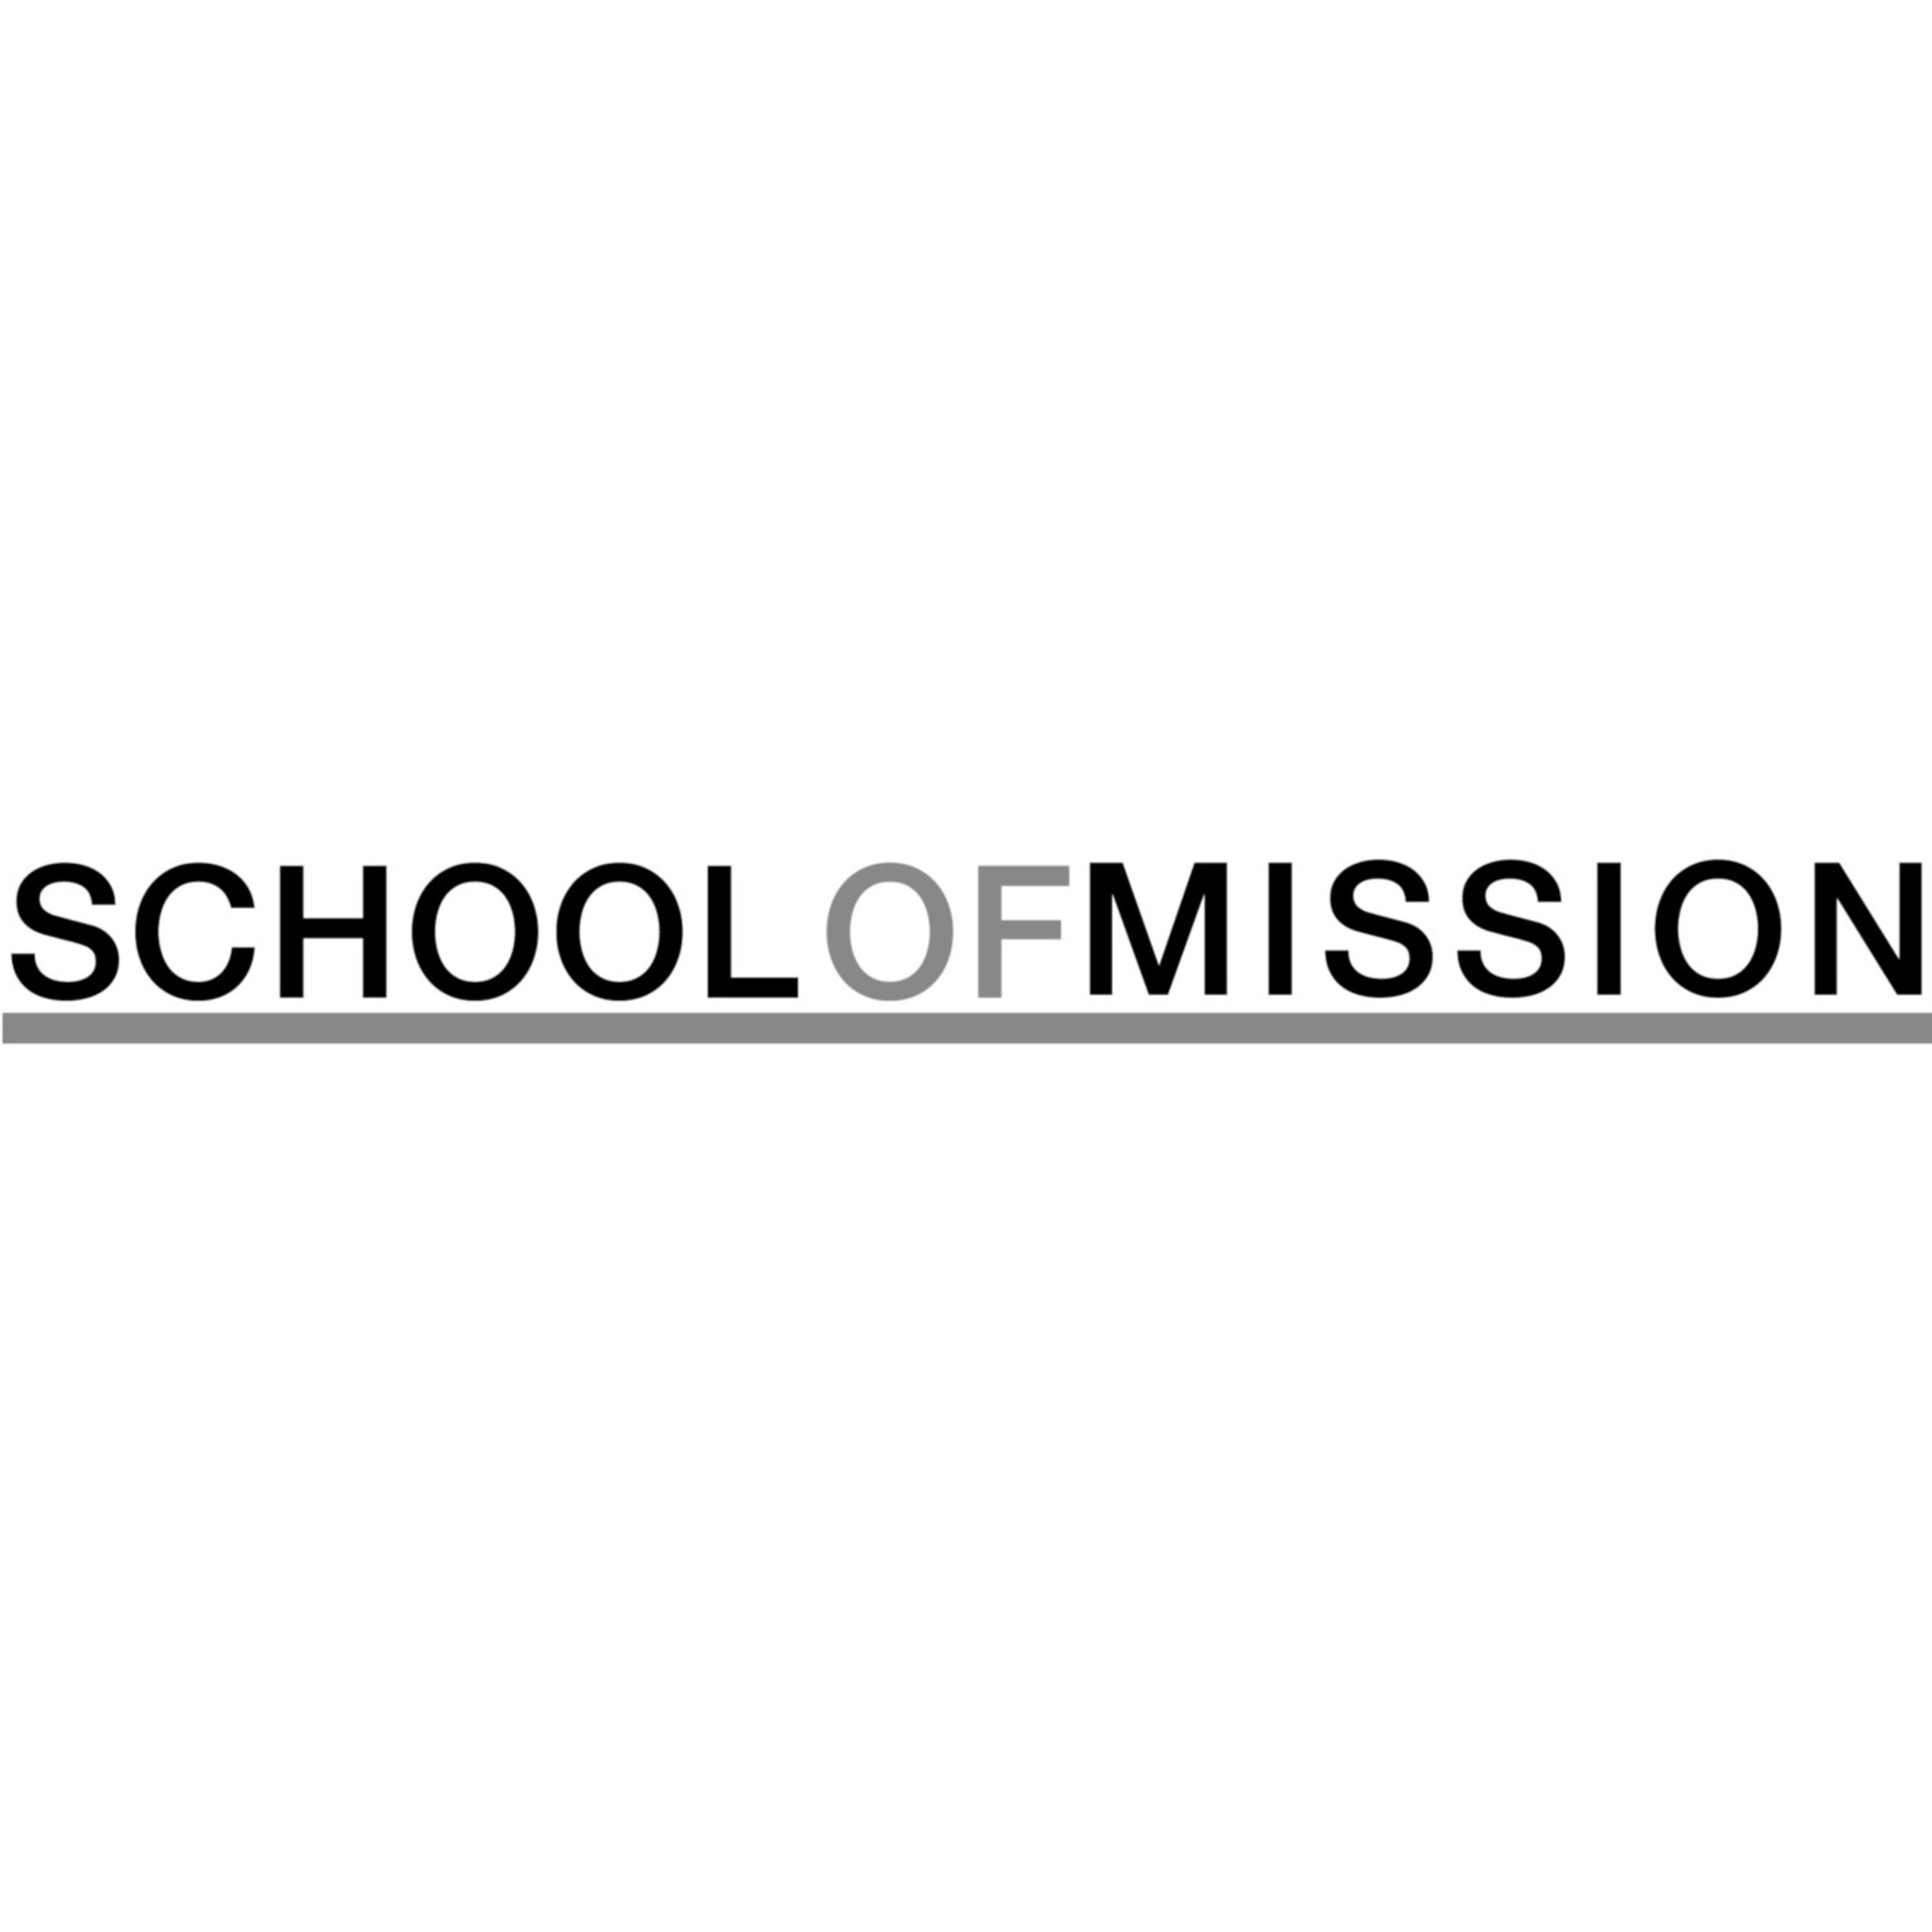 School of Mission